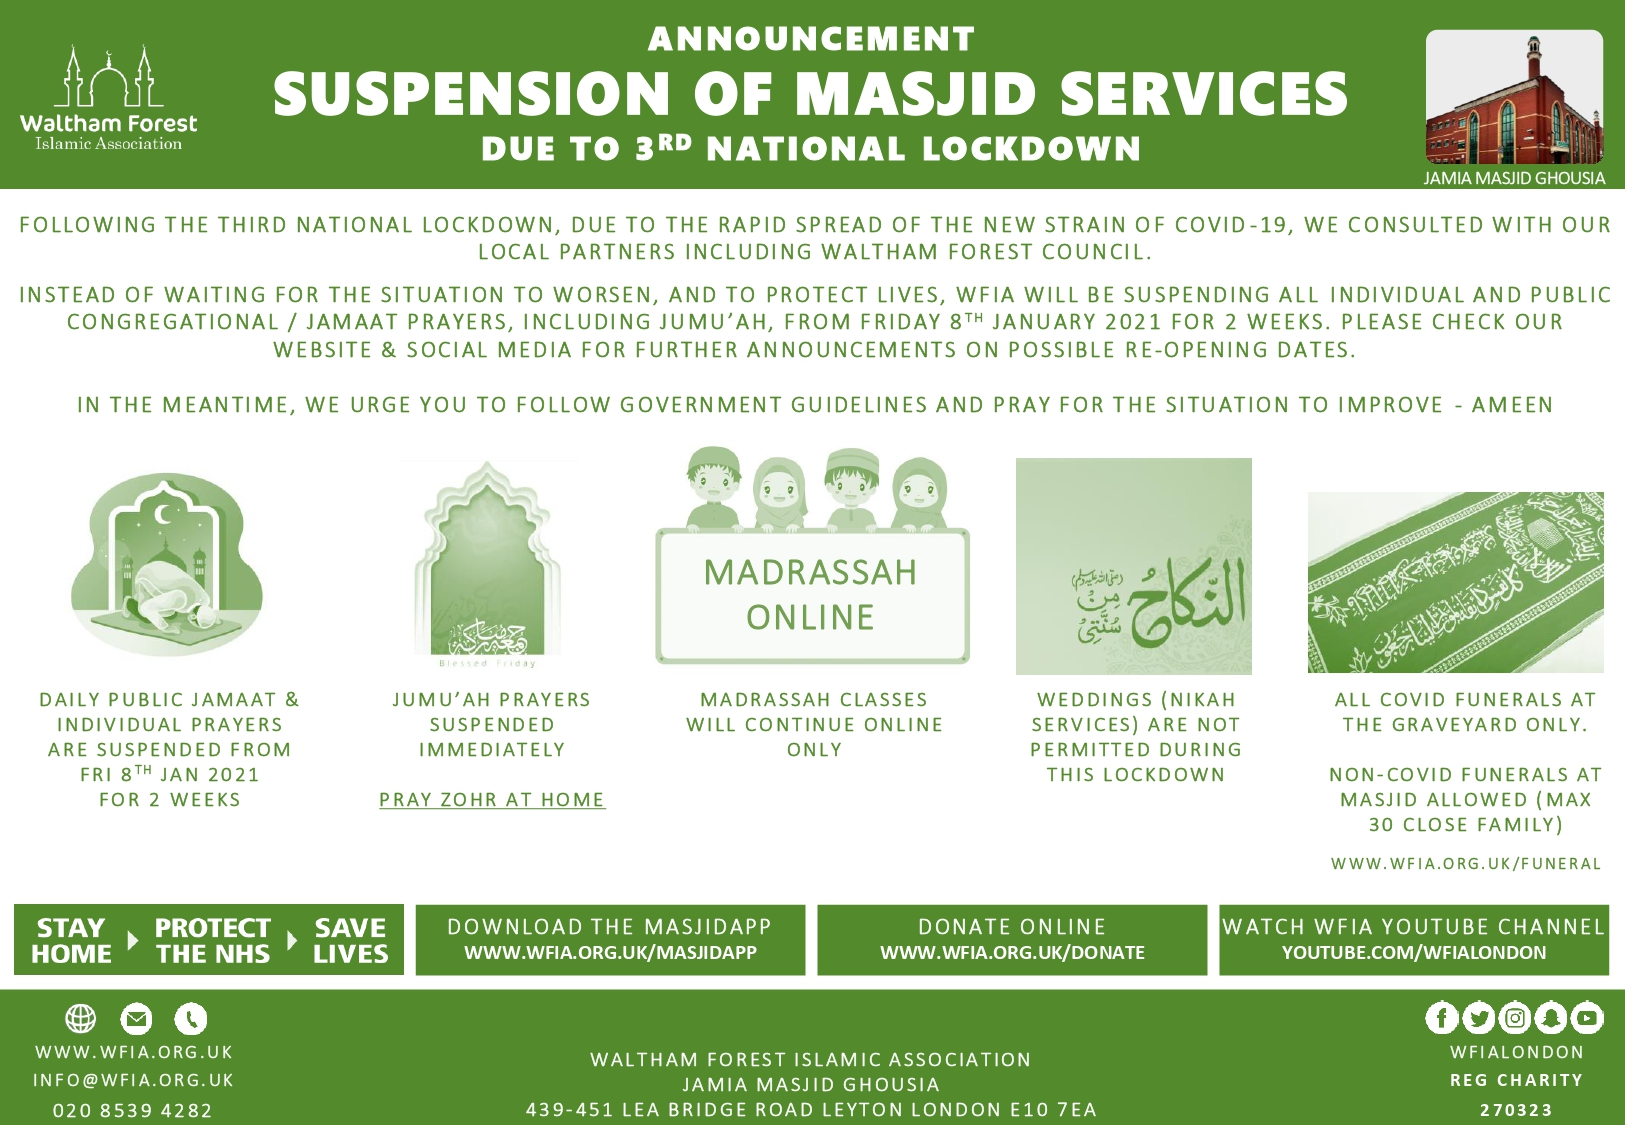 Suspension of Masjid Services Due to Lockdown3